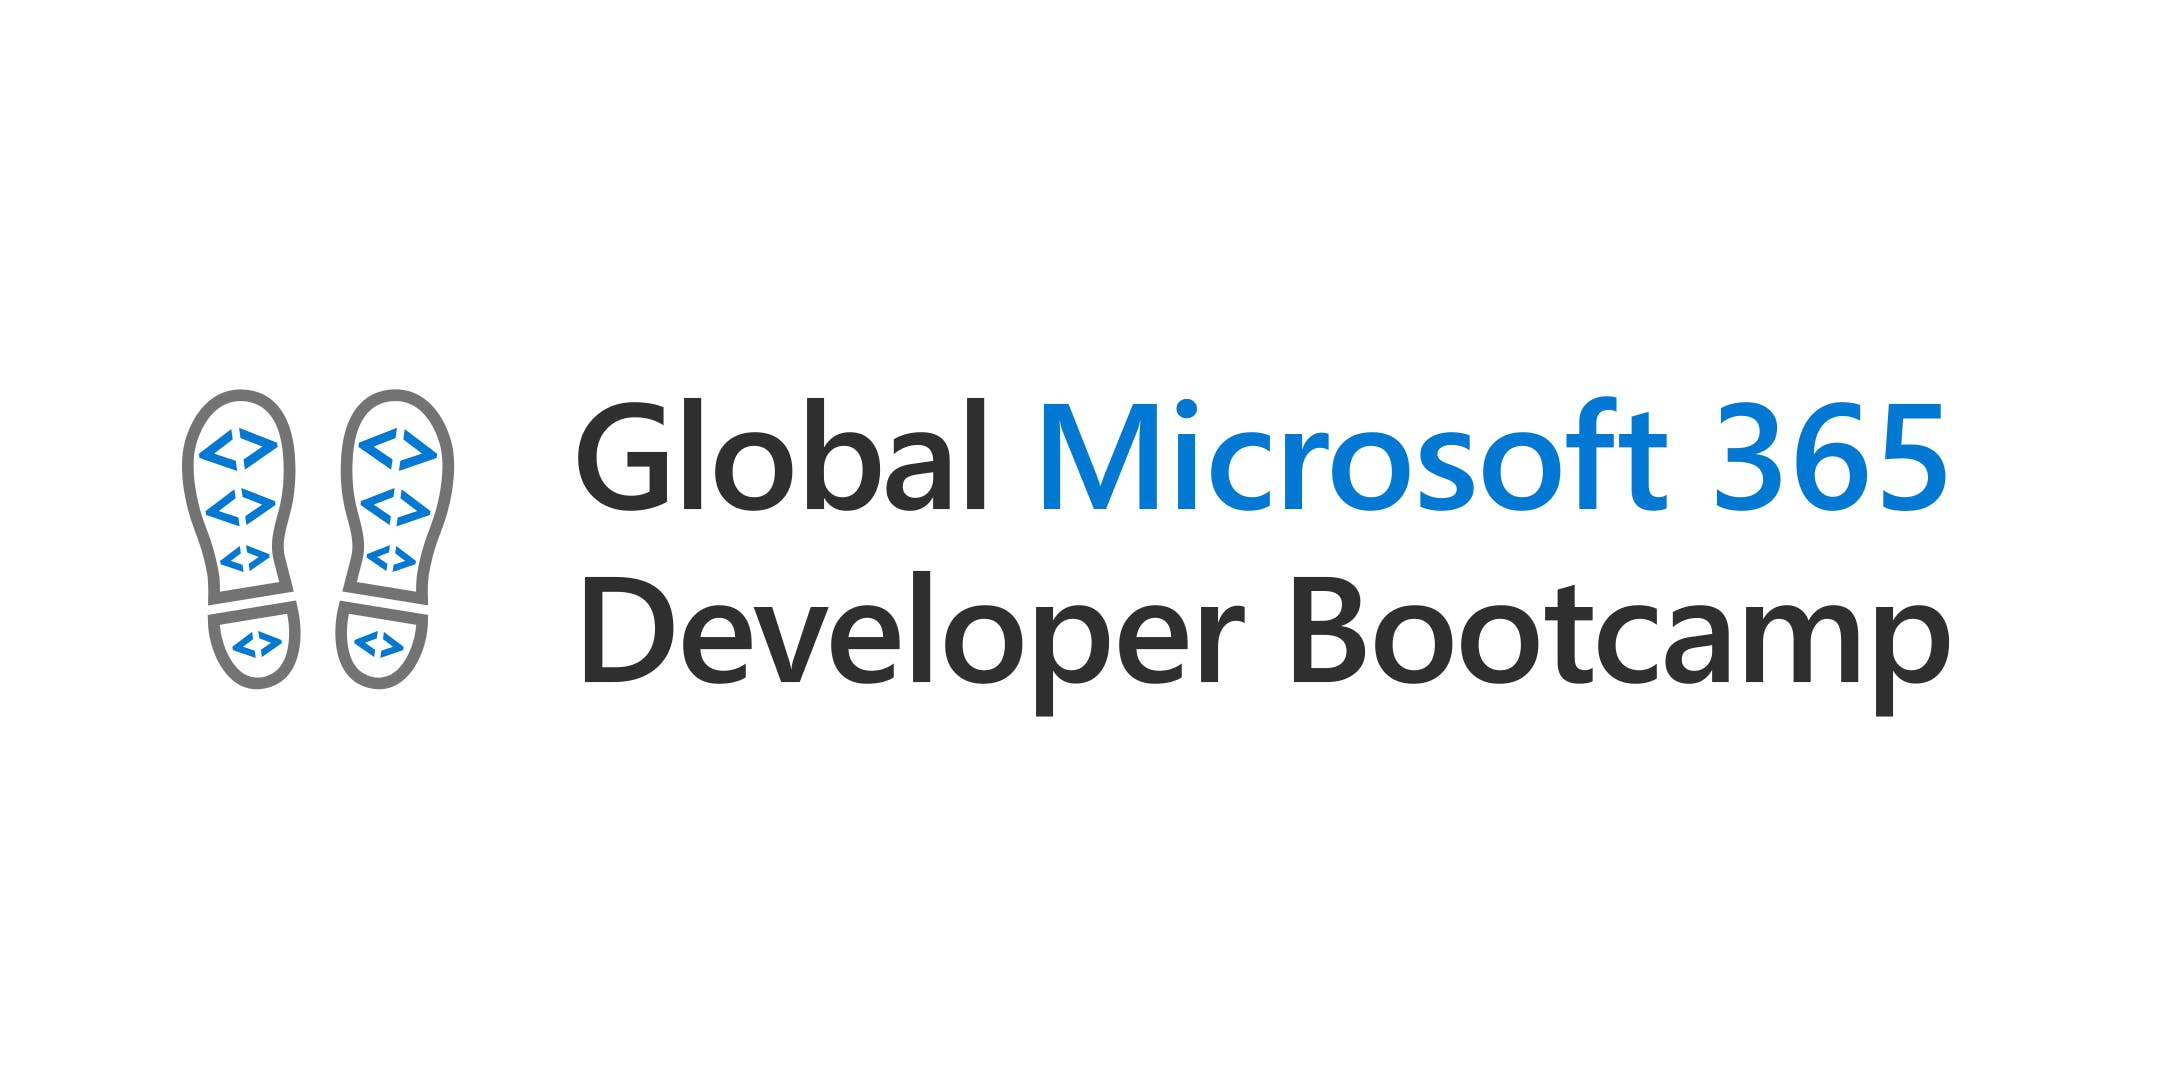 Global Microsoft 365 Developer Bootcamp